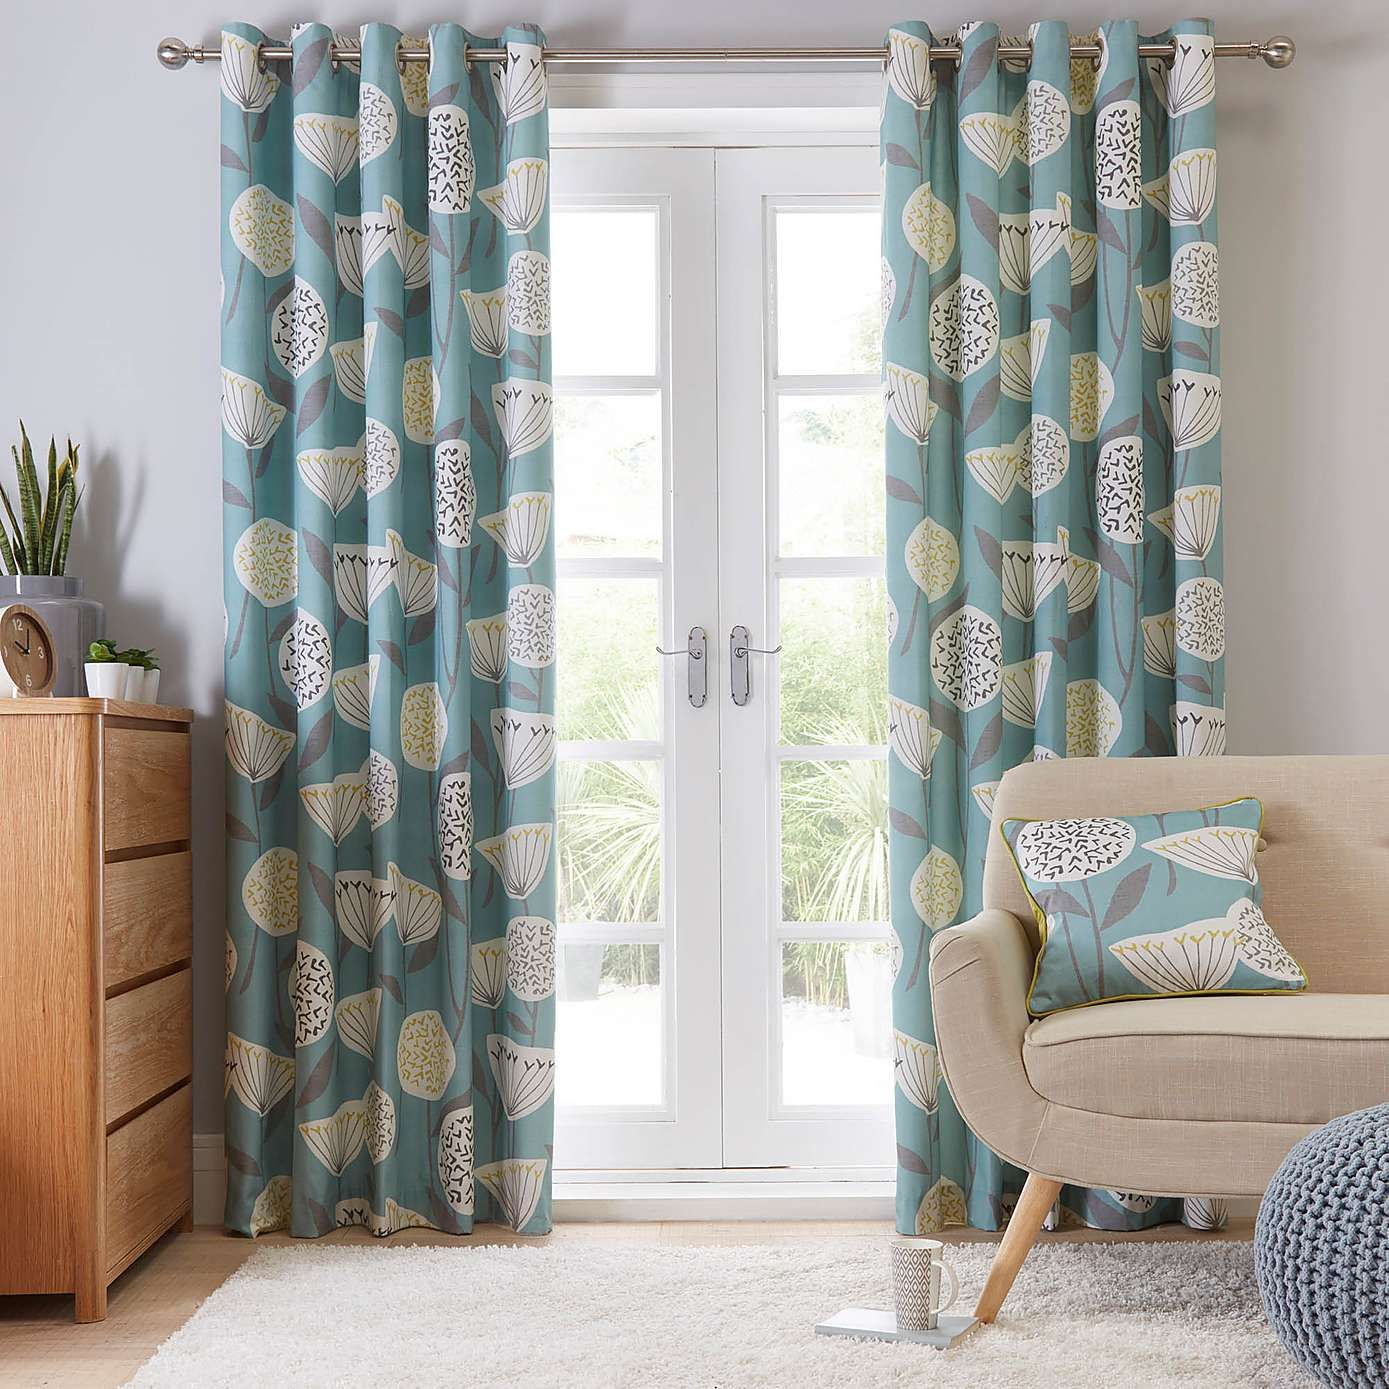 Emmott Teal Lined Eyelet Curtains Dunelm Teal Living R